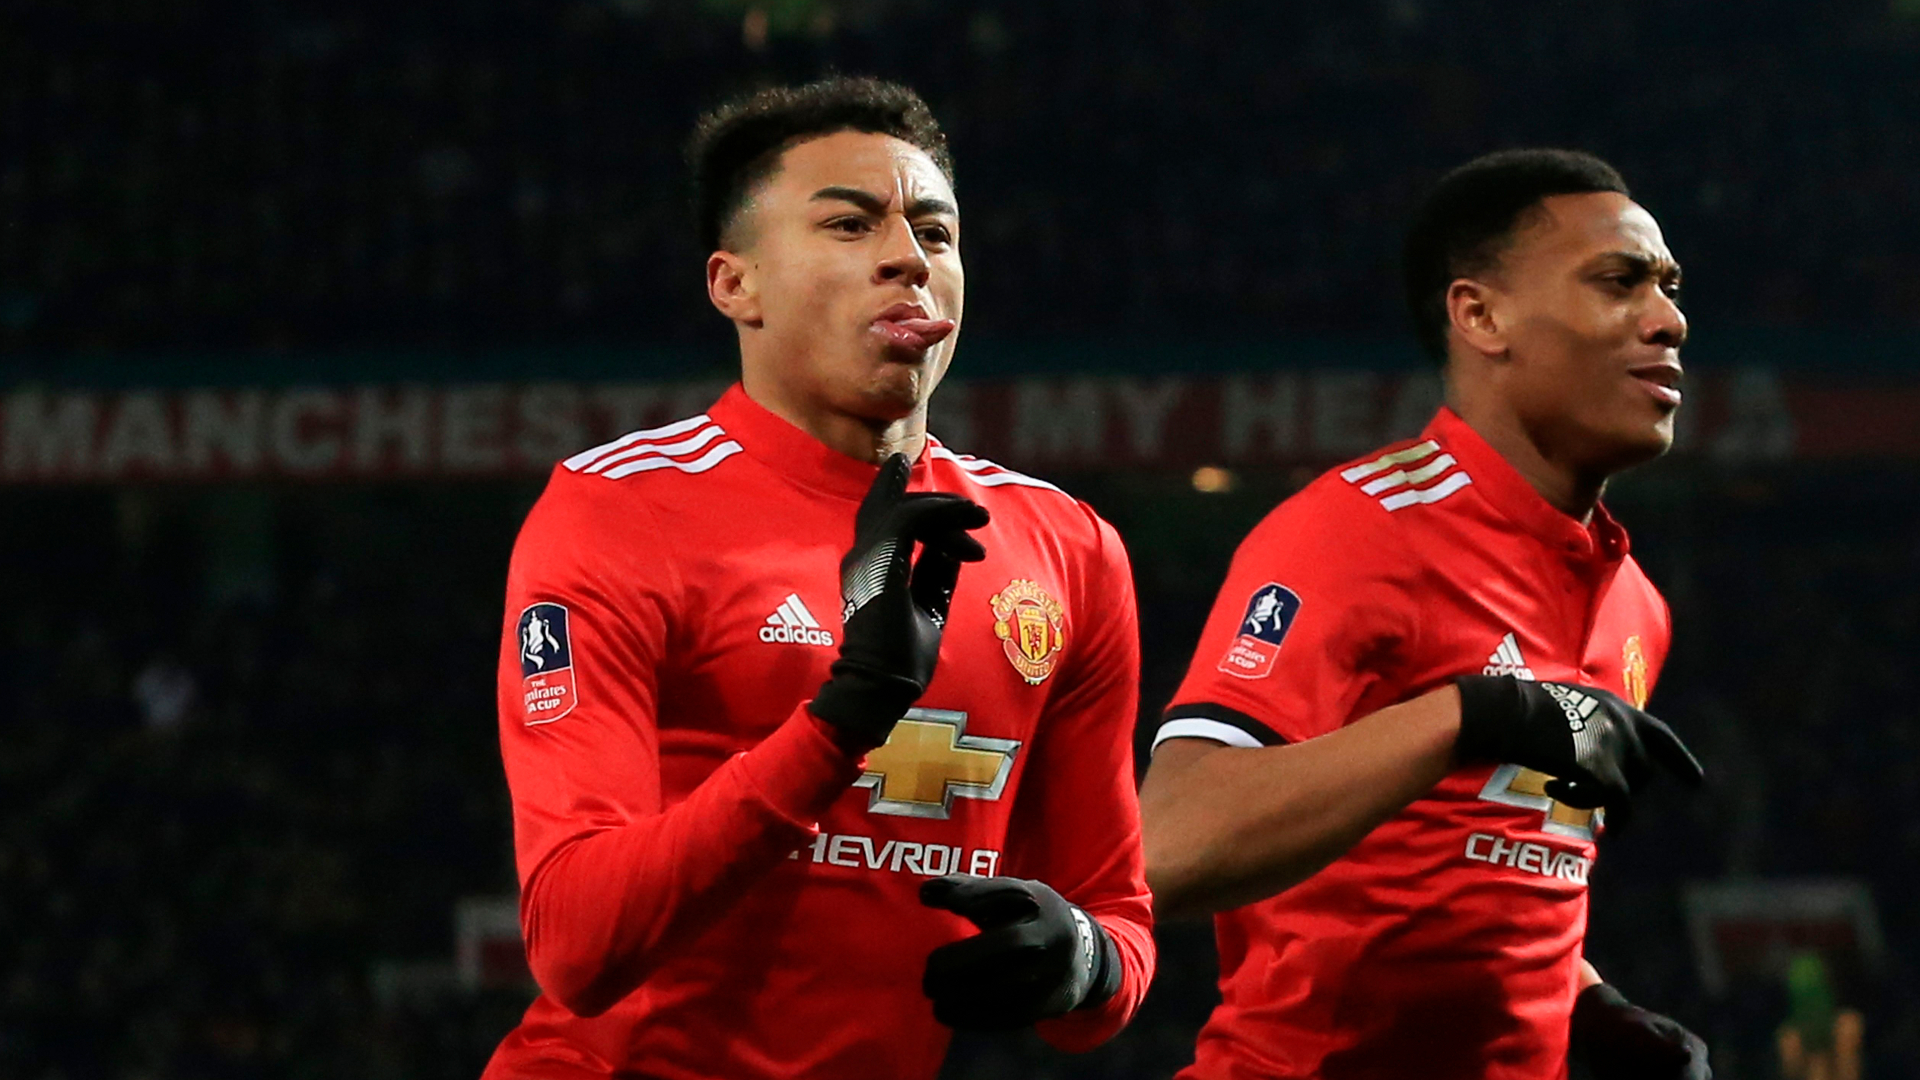 £650m spent, but academy star Lingard is Man Utd's best player right now